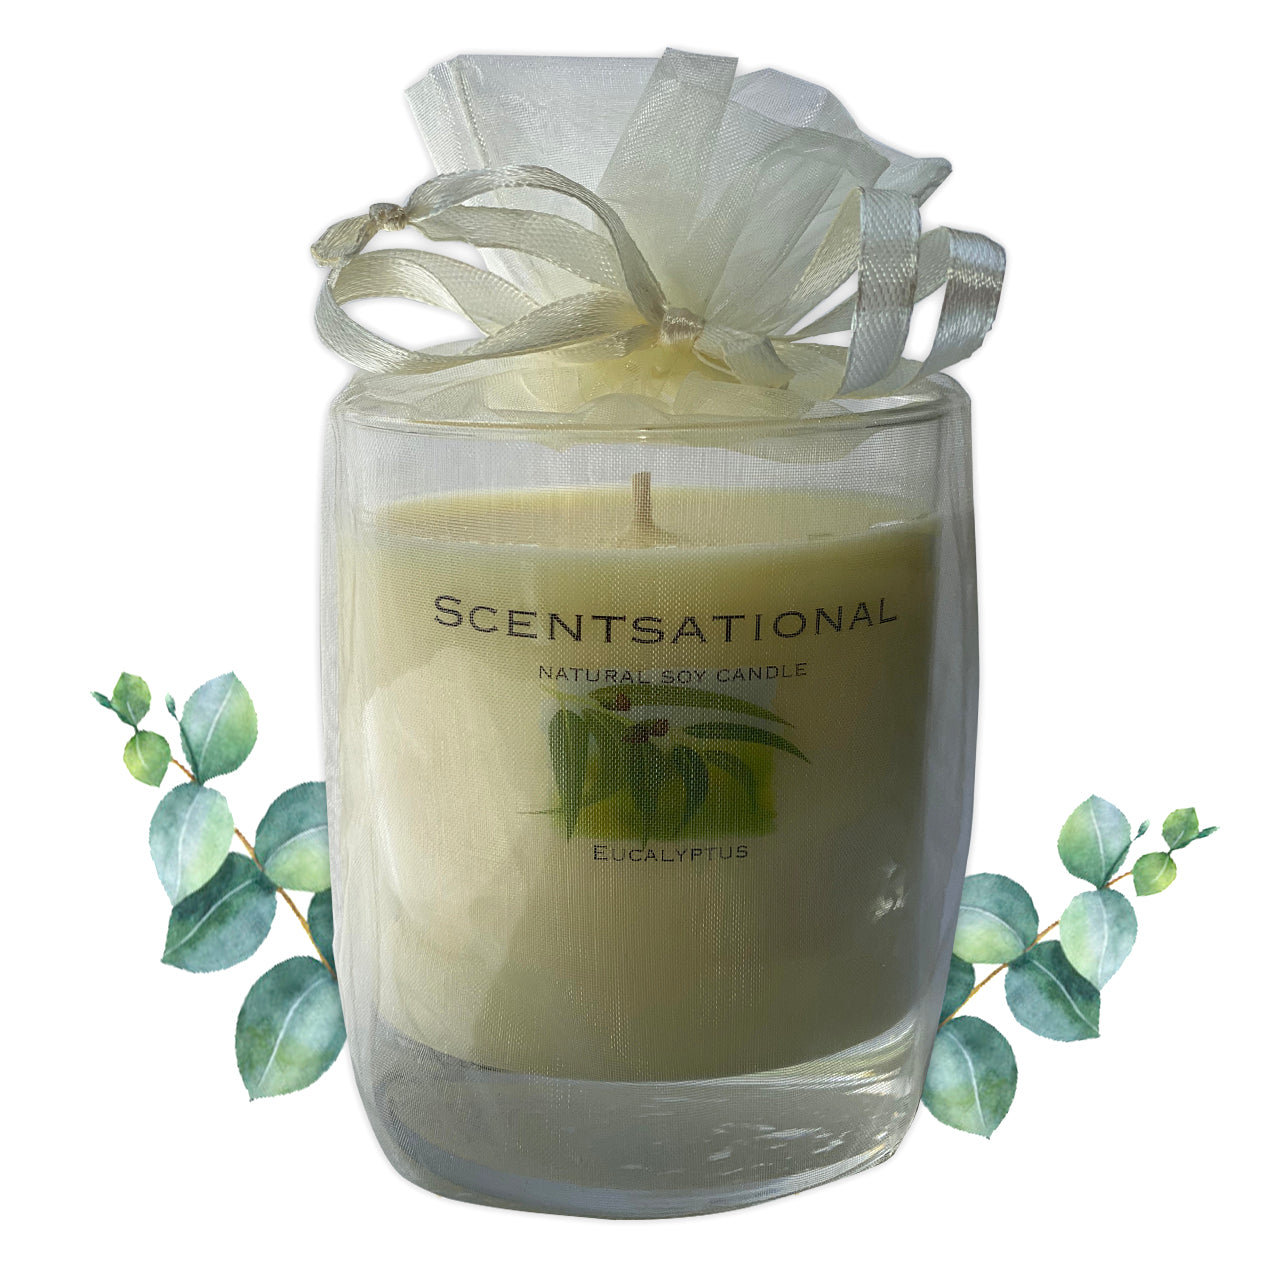 Scented Soy Candles EUCALYPTUS (11 oz) eliminates smoke, household and pet odors. - Cigar boulevard